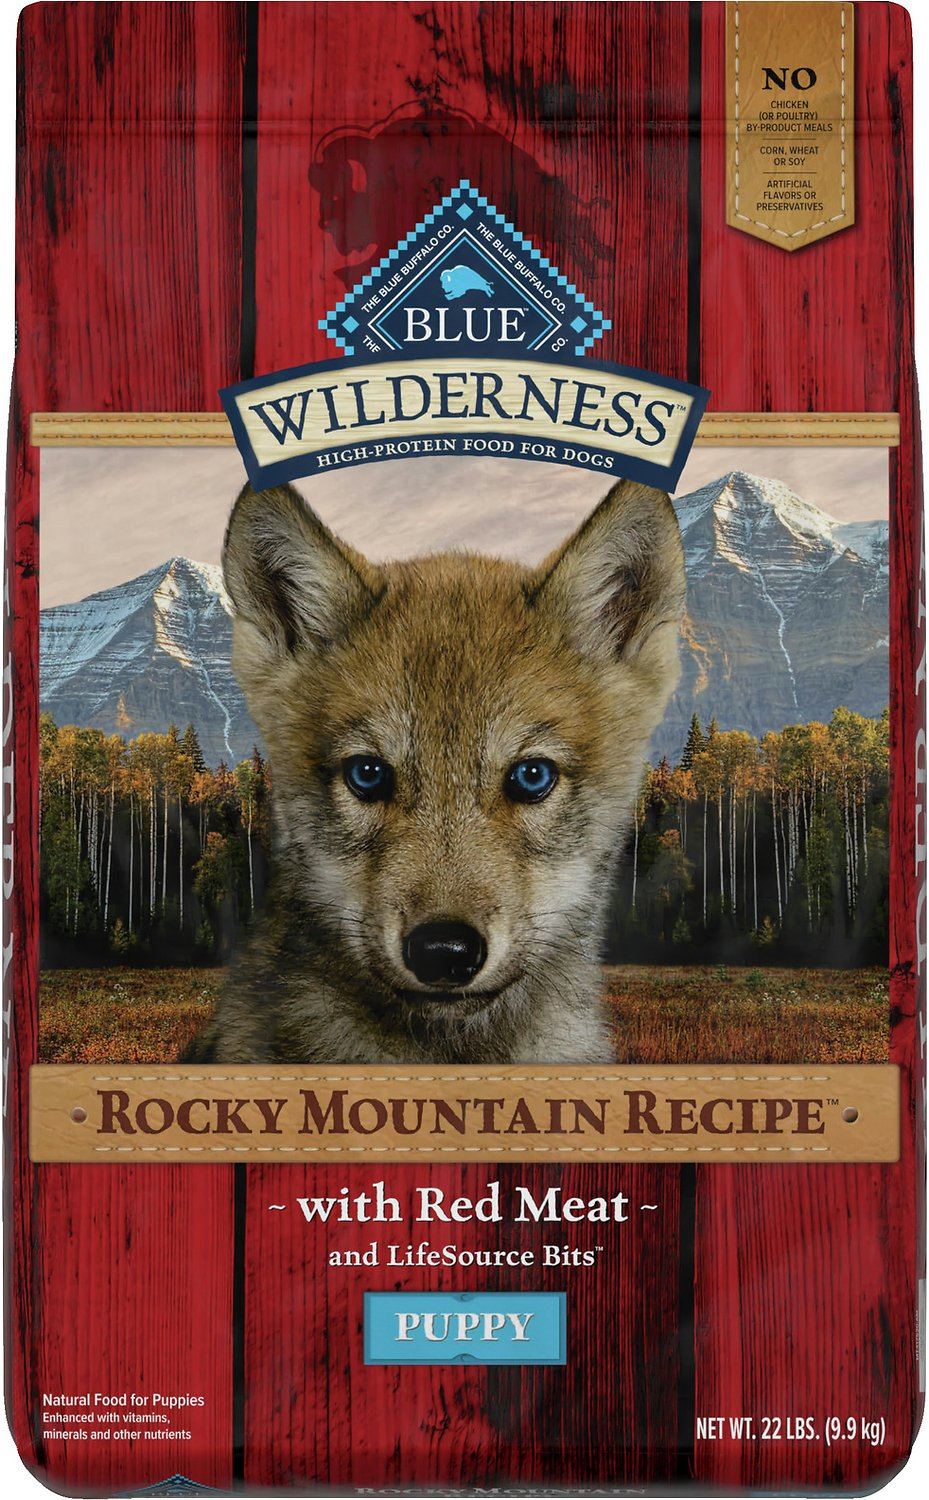 Blue Puppy Food >> Blue Buffalo Wilderness Rocky Mountain Recipe with Red Meat Puppy Grain-Free Dry Dog Food, 22-lb ...